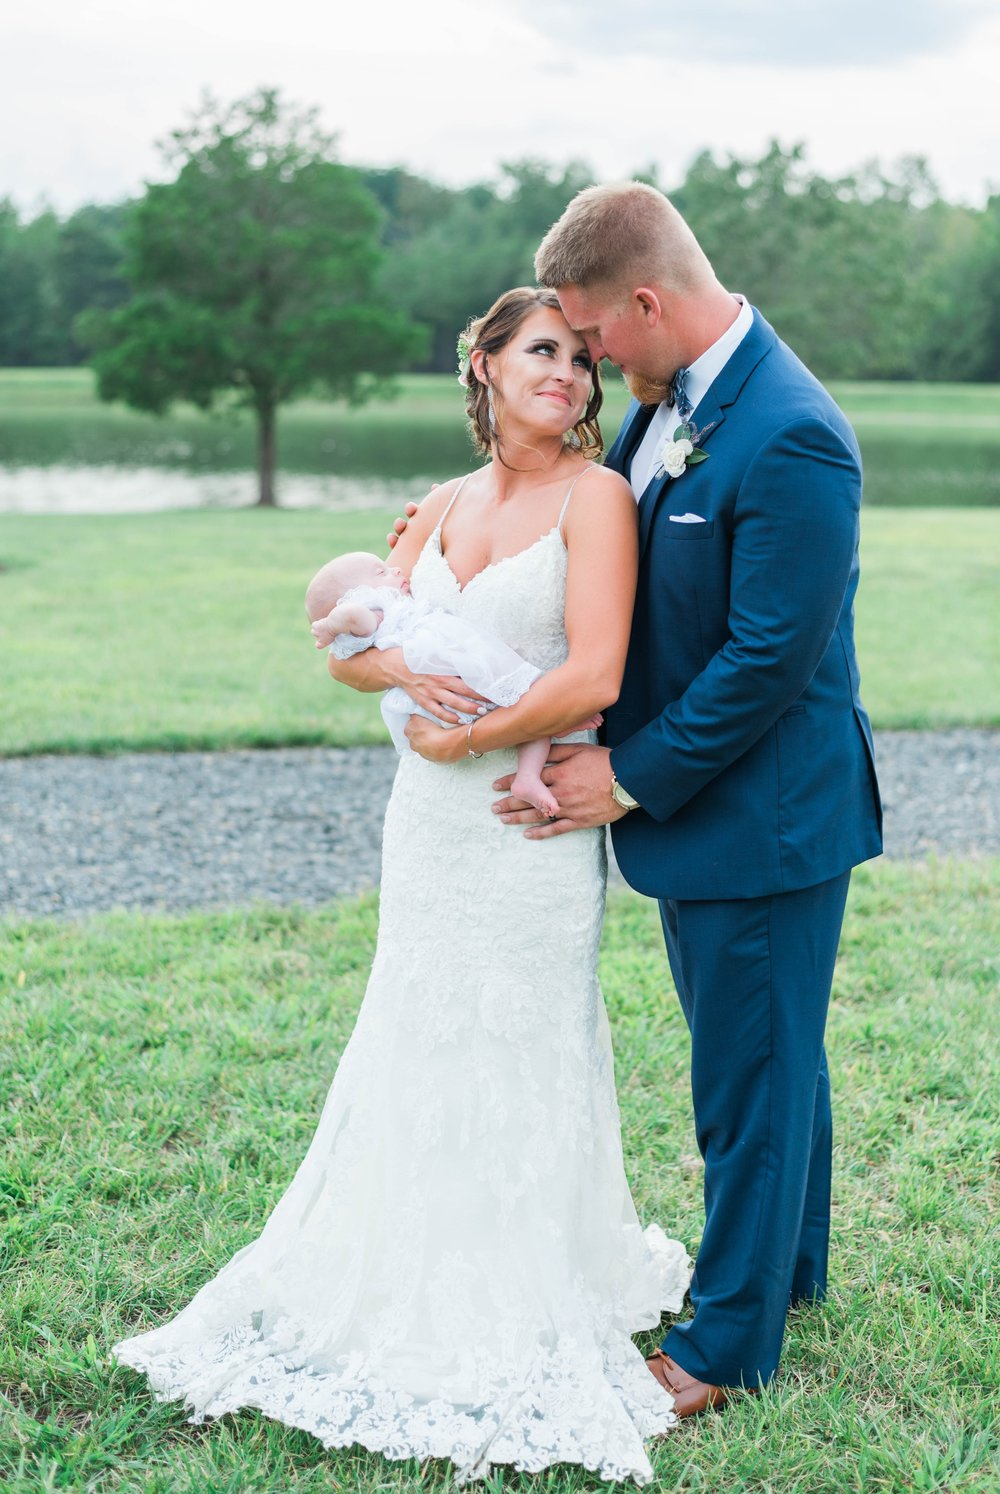 atkinson farms_VirginiaWeddingPhotographer_LynchburgWeddingPhotographer_DylanandLauren 8.jpg